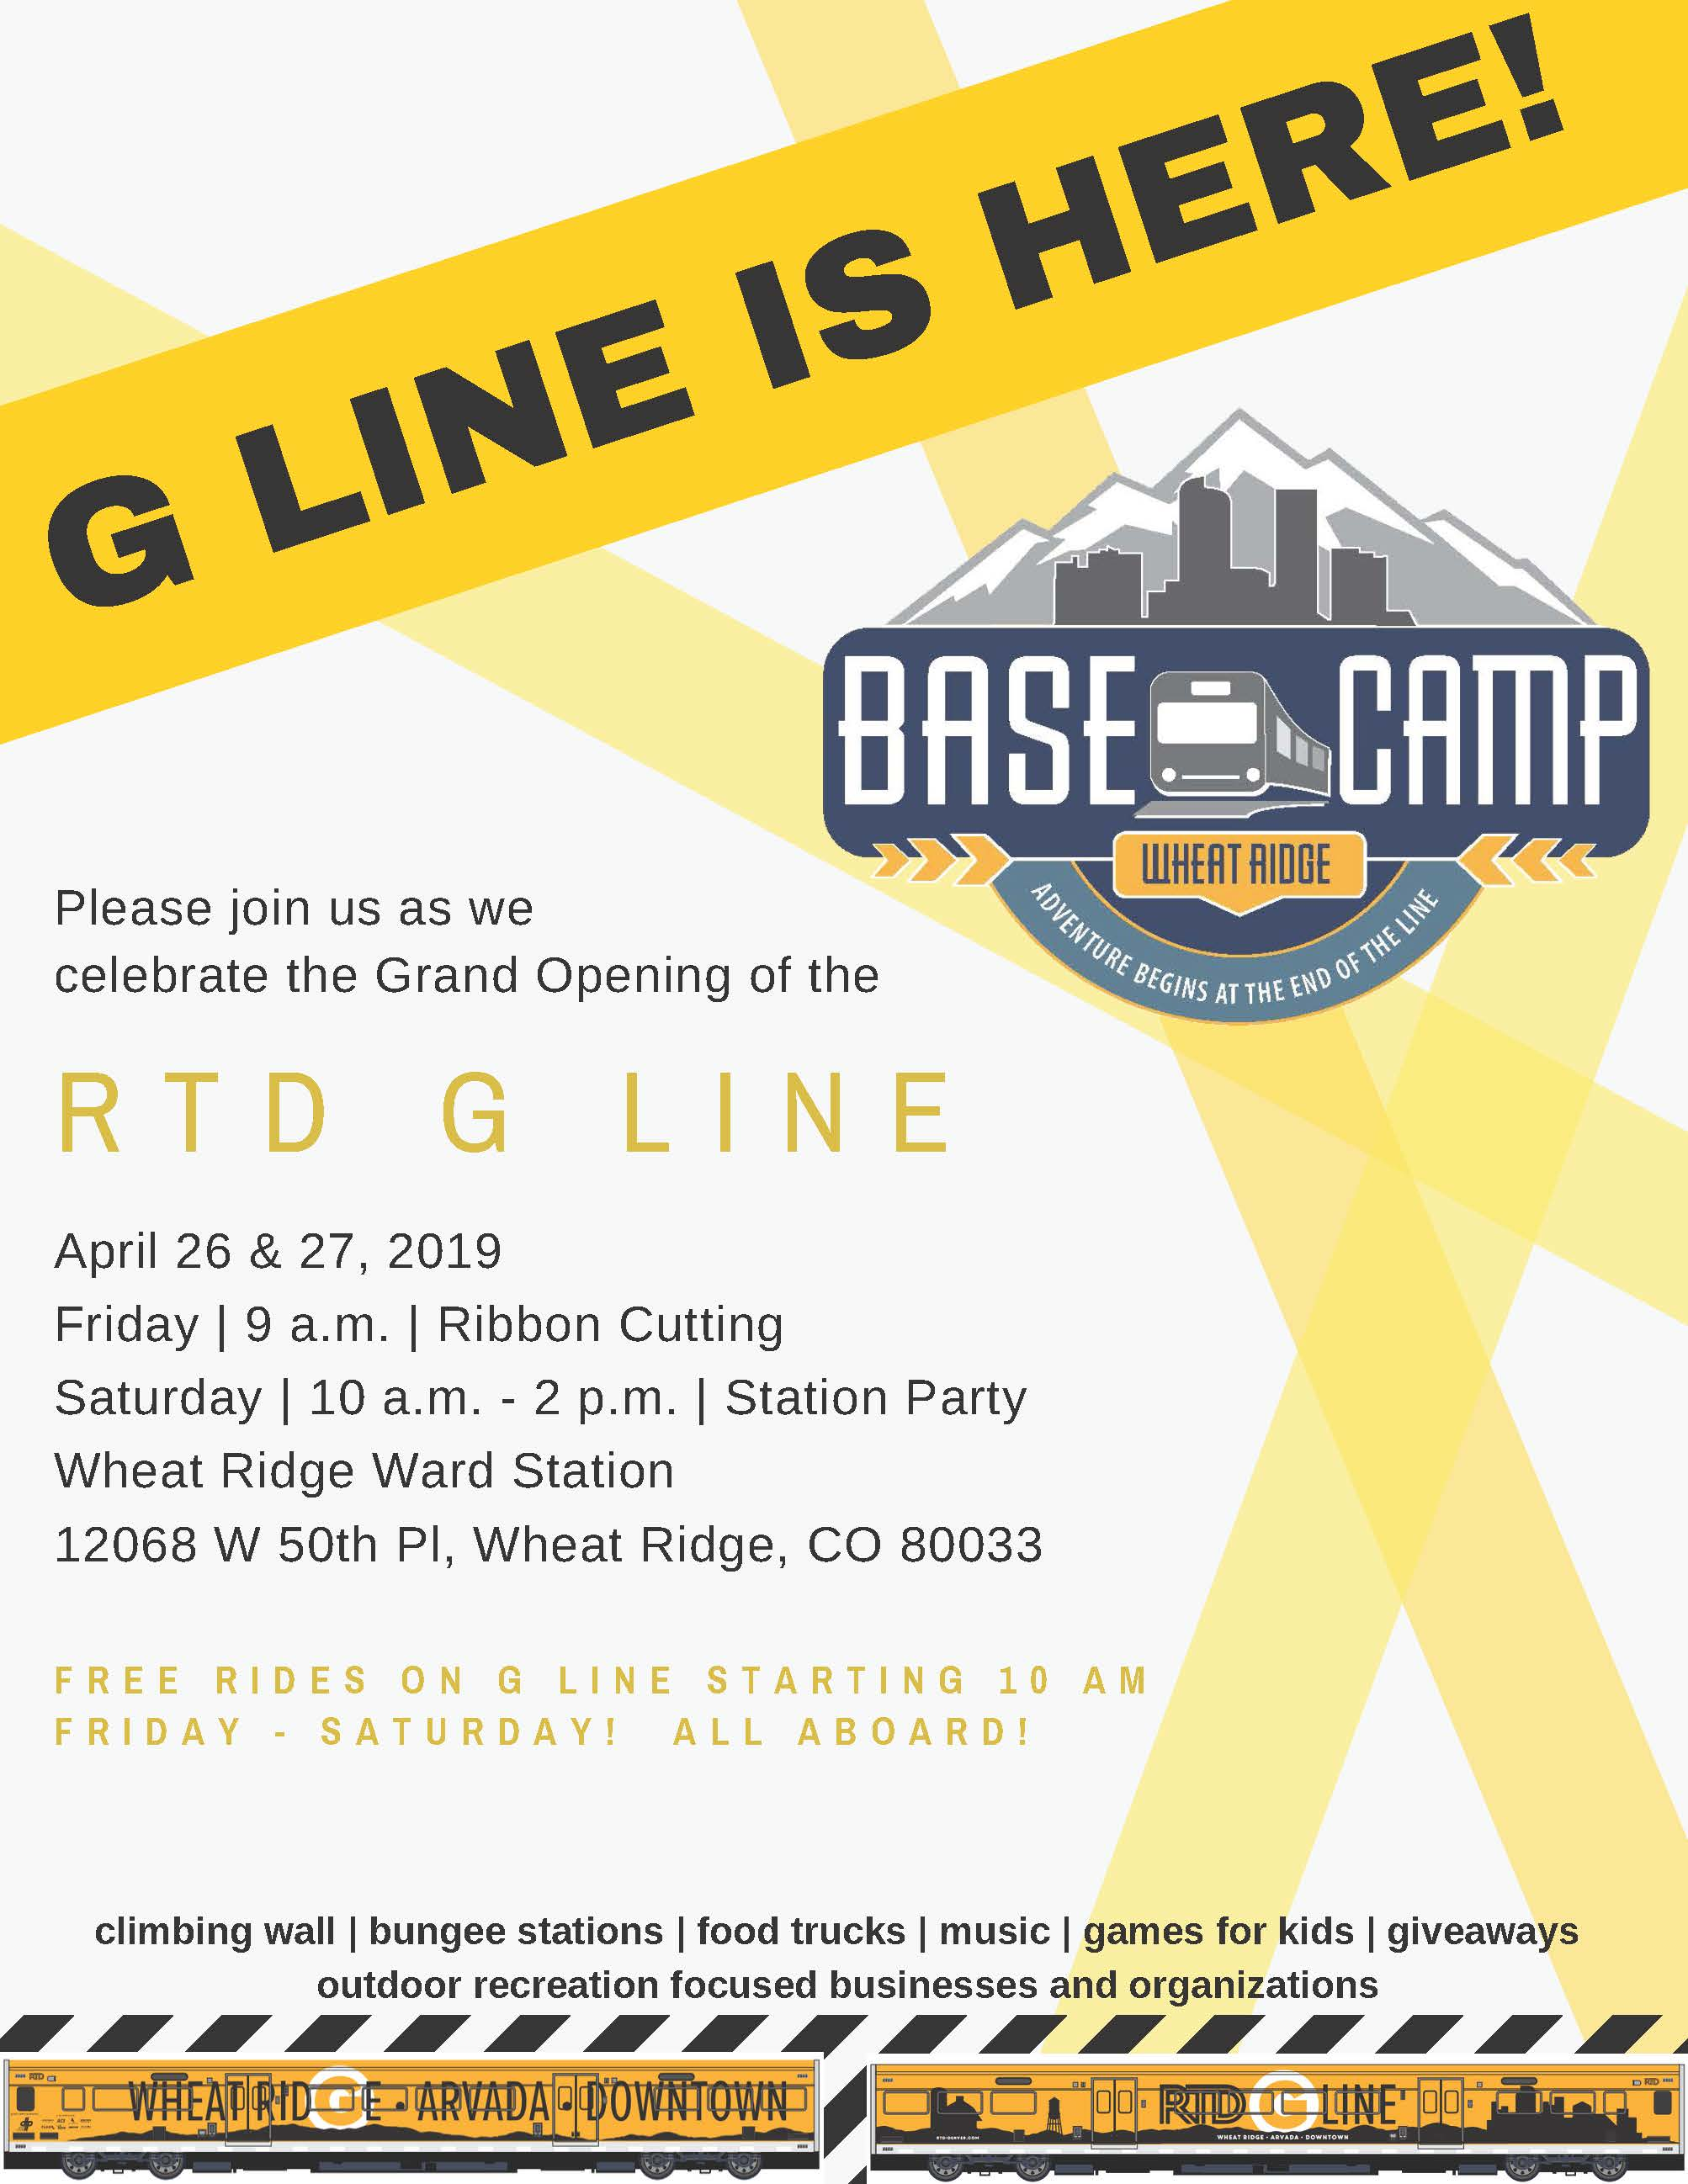 G Line Opening April 27, 2019